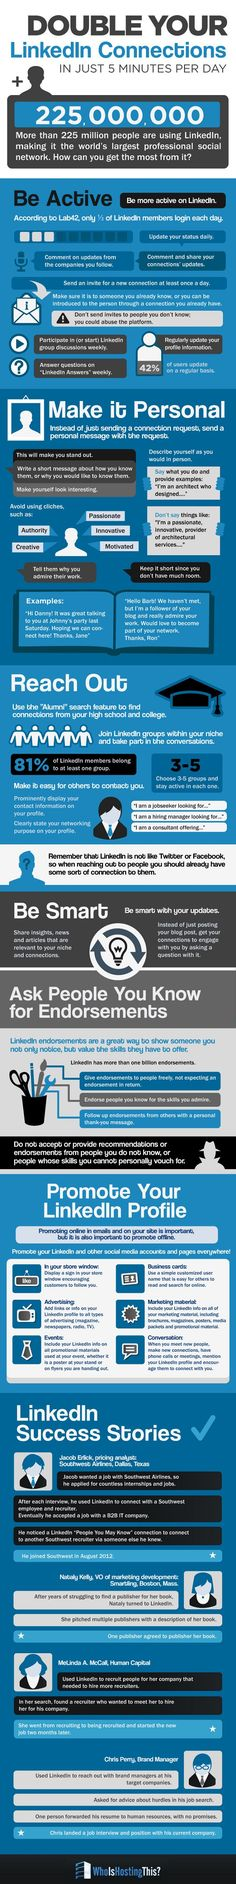 Double Your LinkedIn Connections In Just 5 Minutes Per Day   #Infographic #LinkedIn #SocialMedia